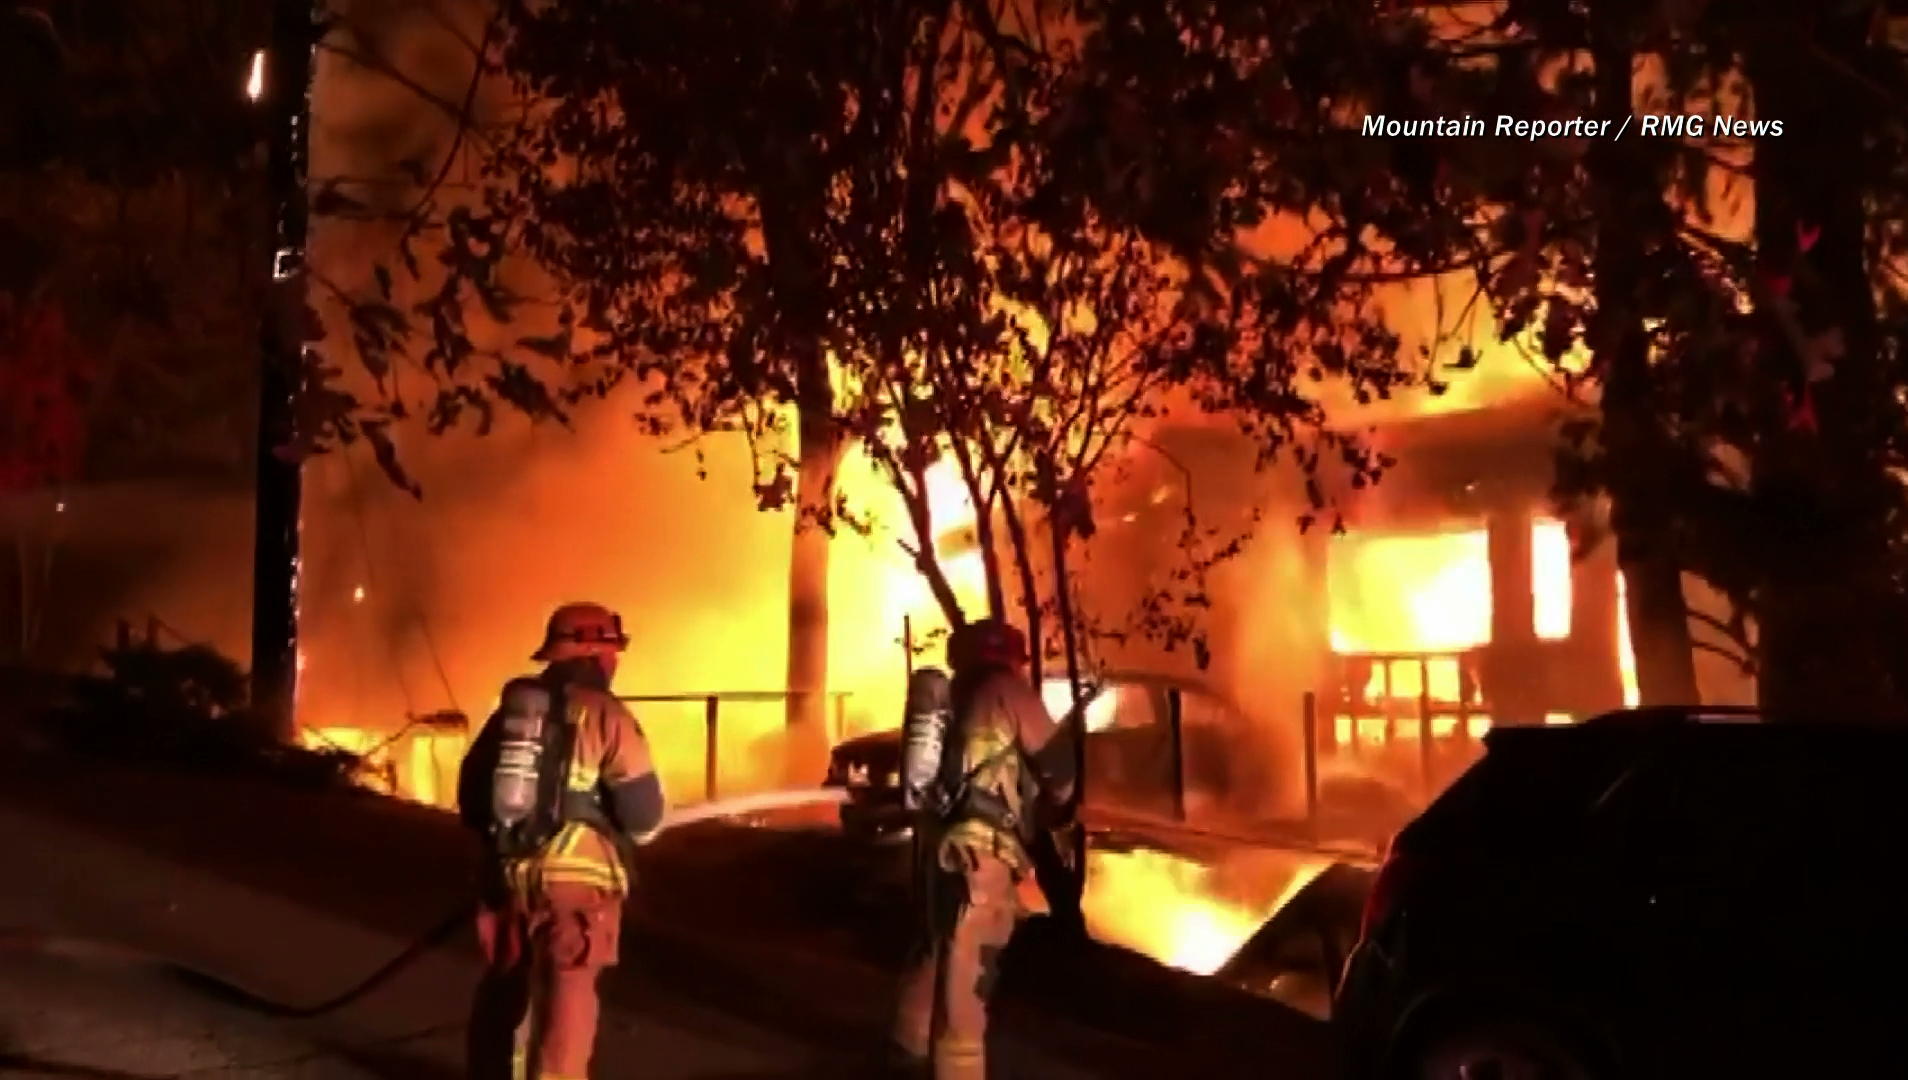 Multiple residences burned down after a house fire broke out in Rimforest, near Lake Arrowhead, on Nov. 4, 2019. (Credit: RMG News)